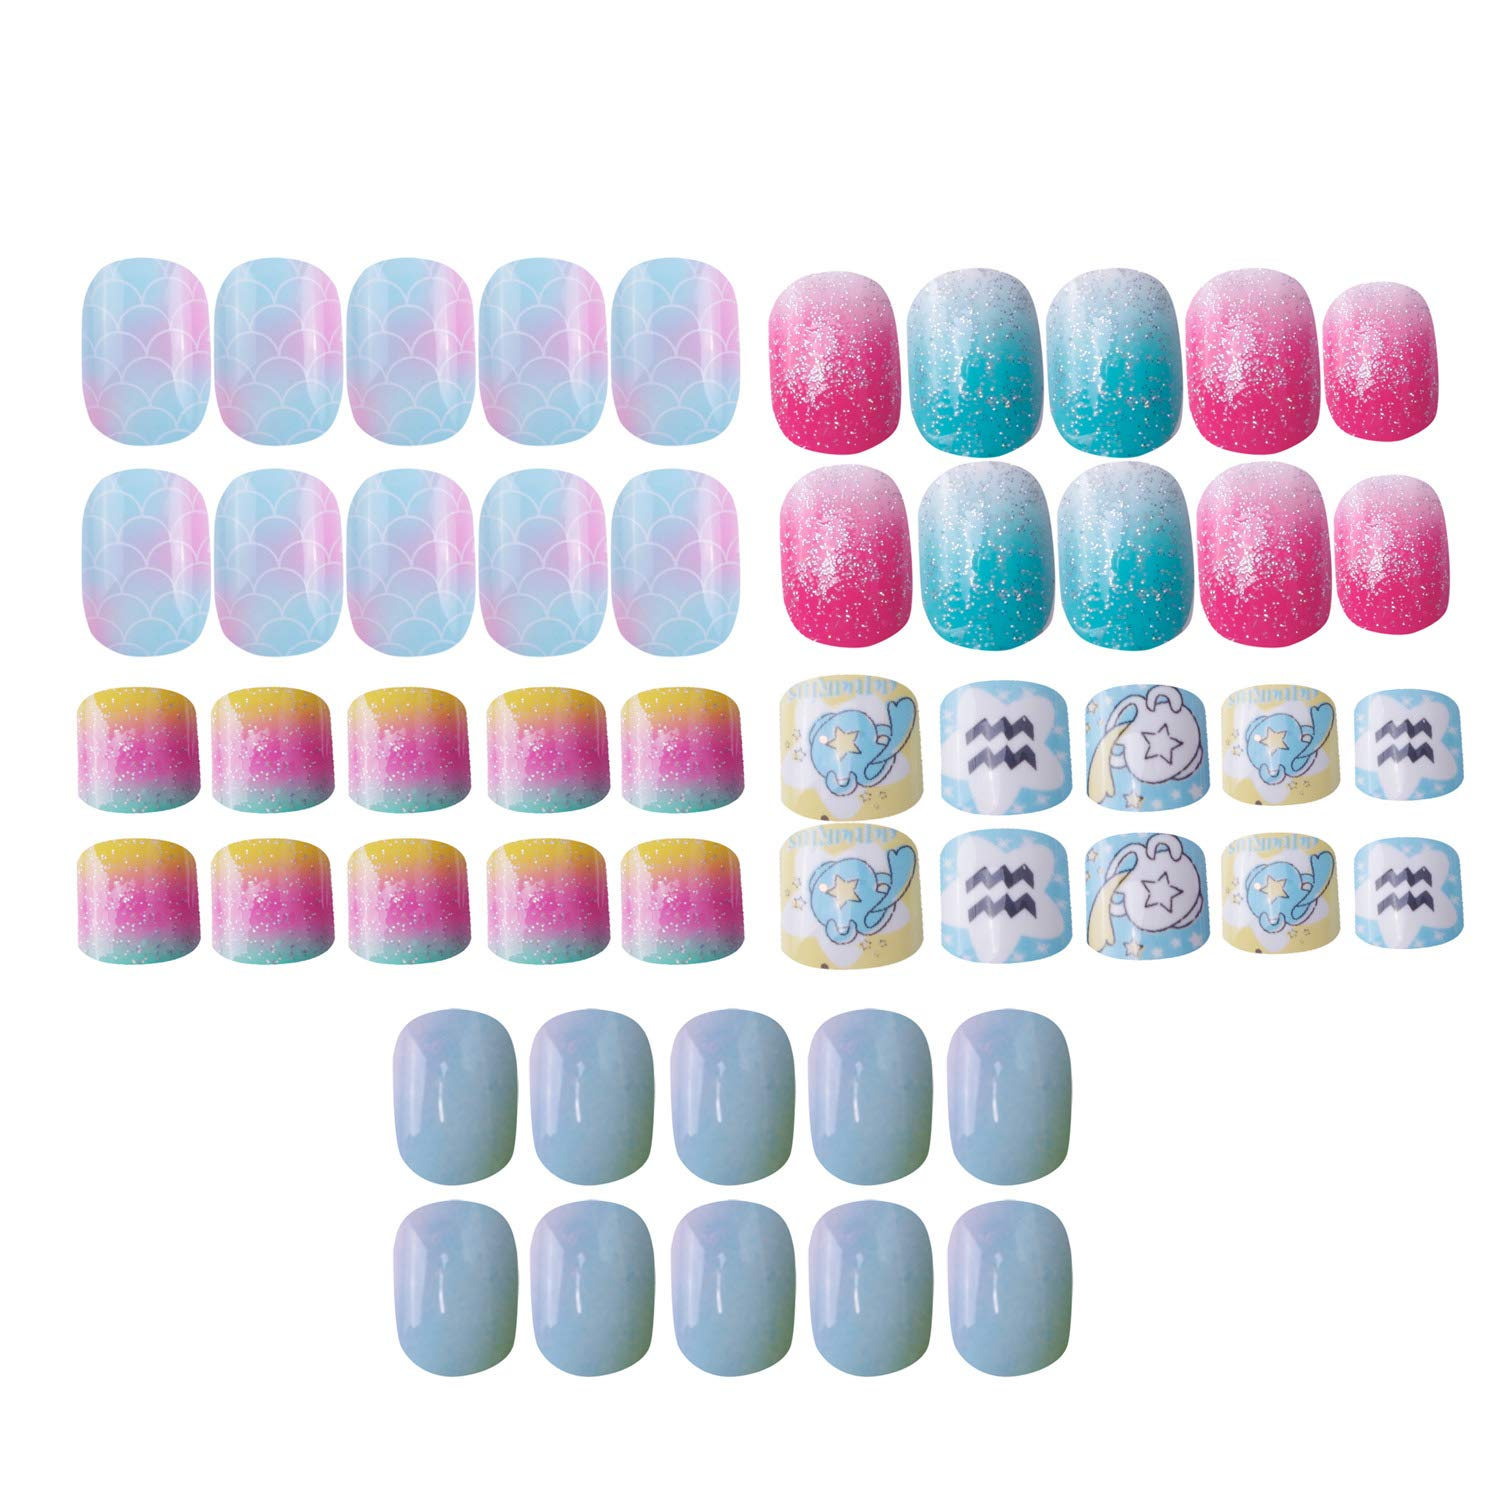 Laza 120pcs Children Nails Press On Pre-glue Full Cover Glitter Gradient Color Rainbow Sparkling Scale Wave AquariusShort False Nail Kits for Kids Teenager Girls - Little Mermaid by Laza